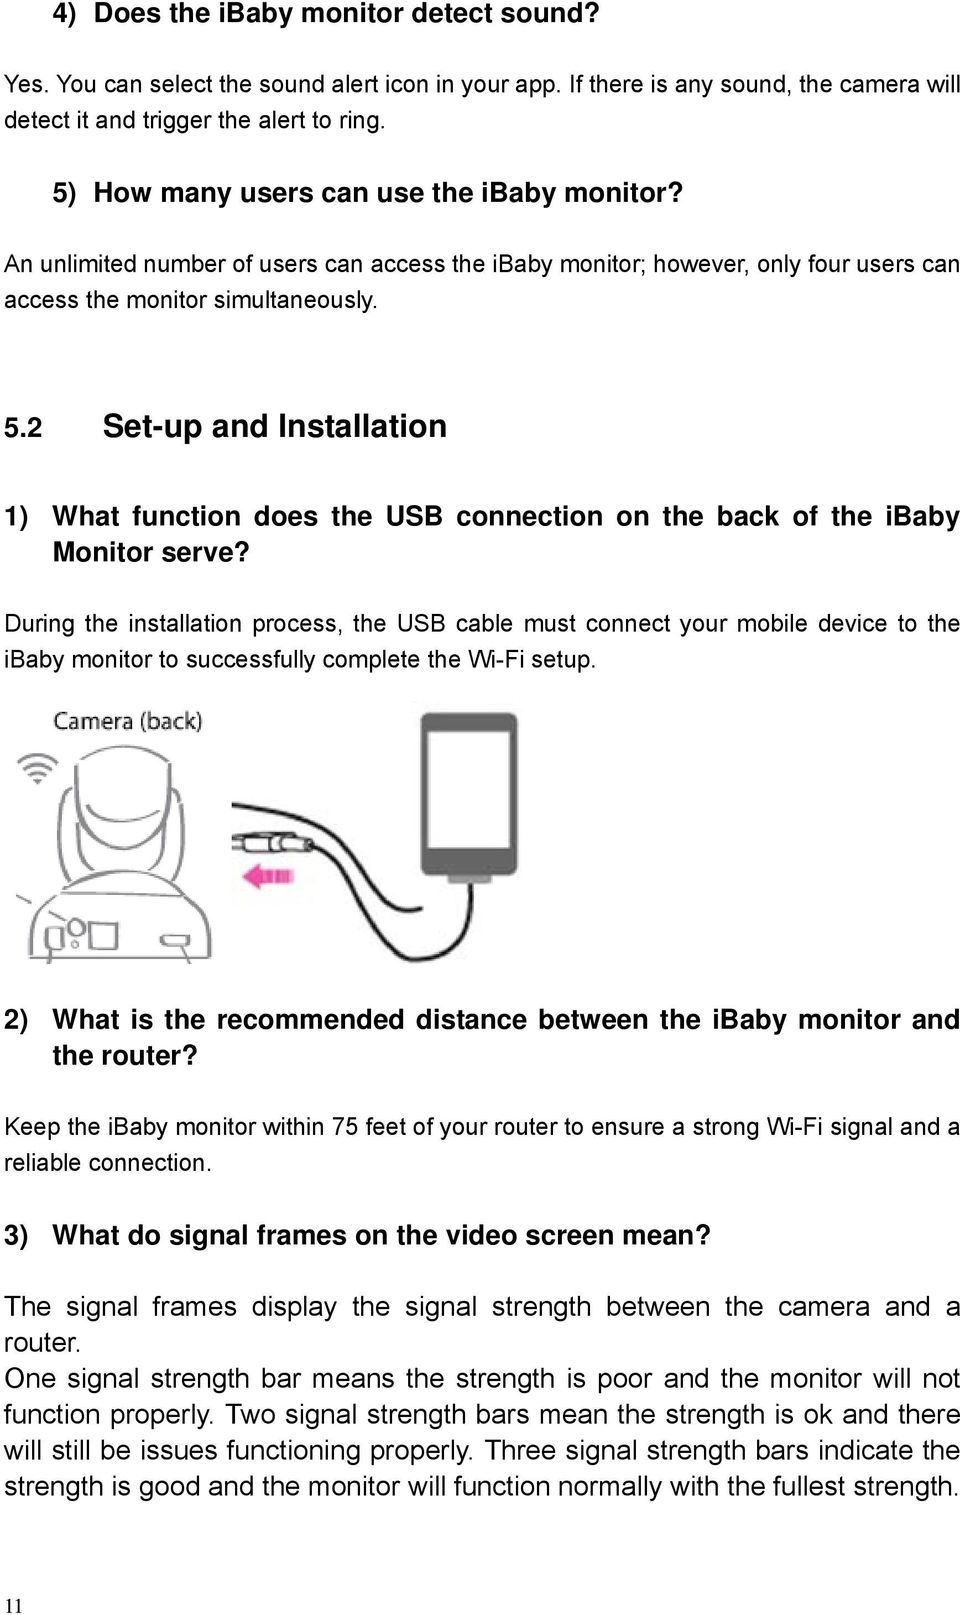 2 Set-up and Installation 1) What function does the USB connection on the back of the ibaby Monitor serve?